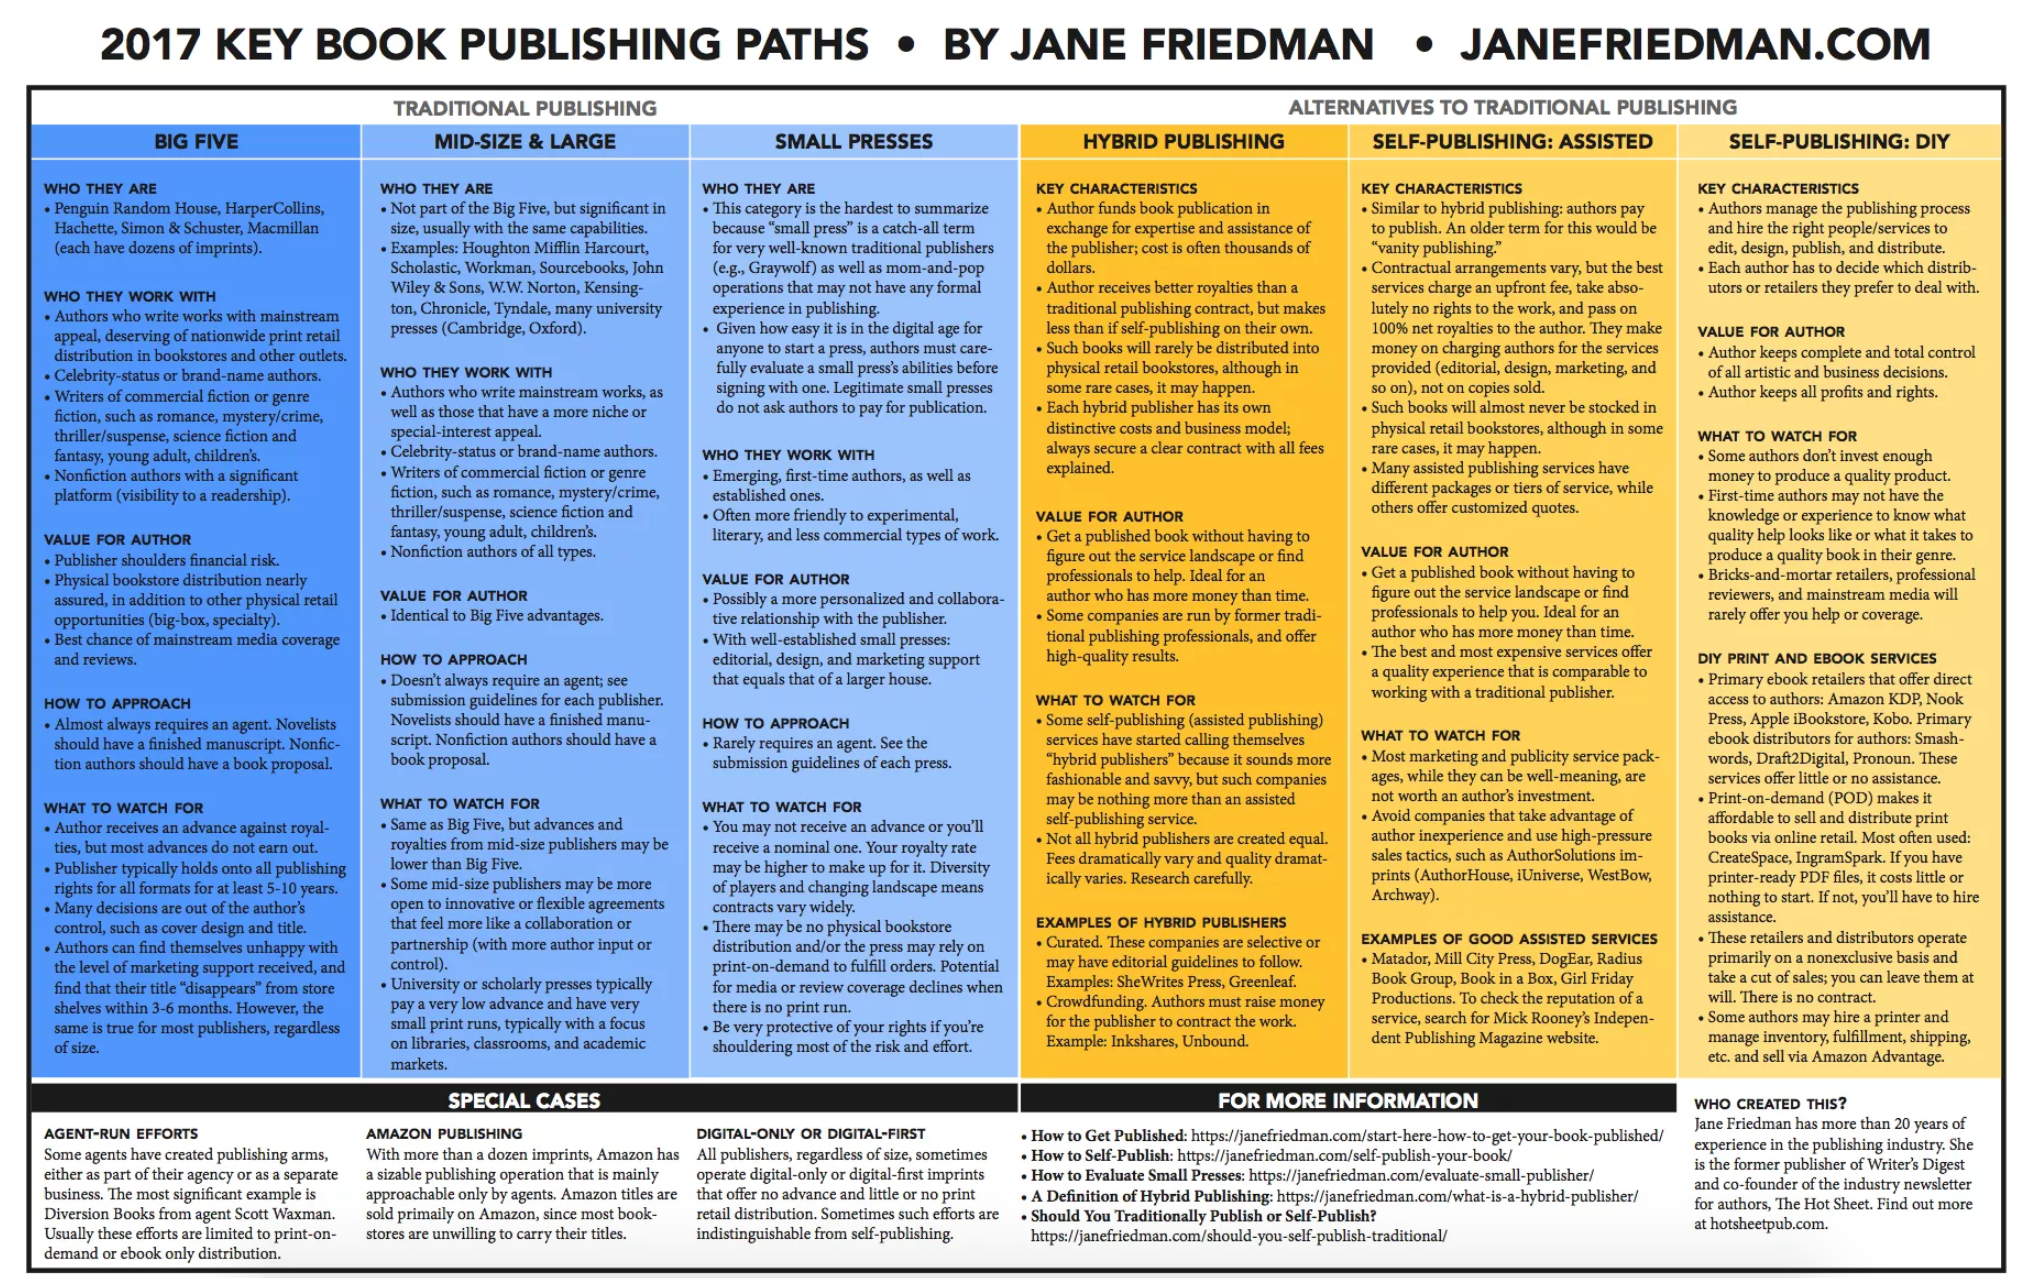 Jane Friedman Publishing Paths